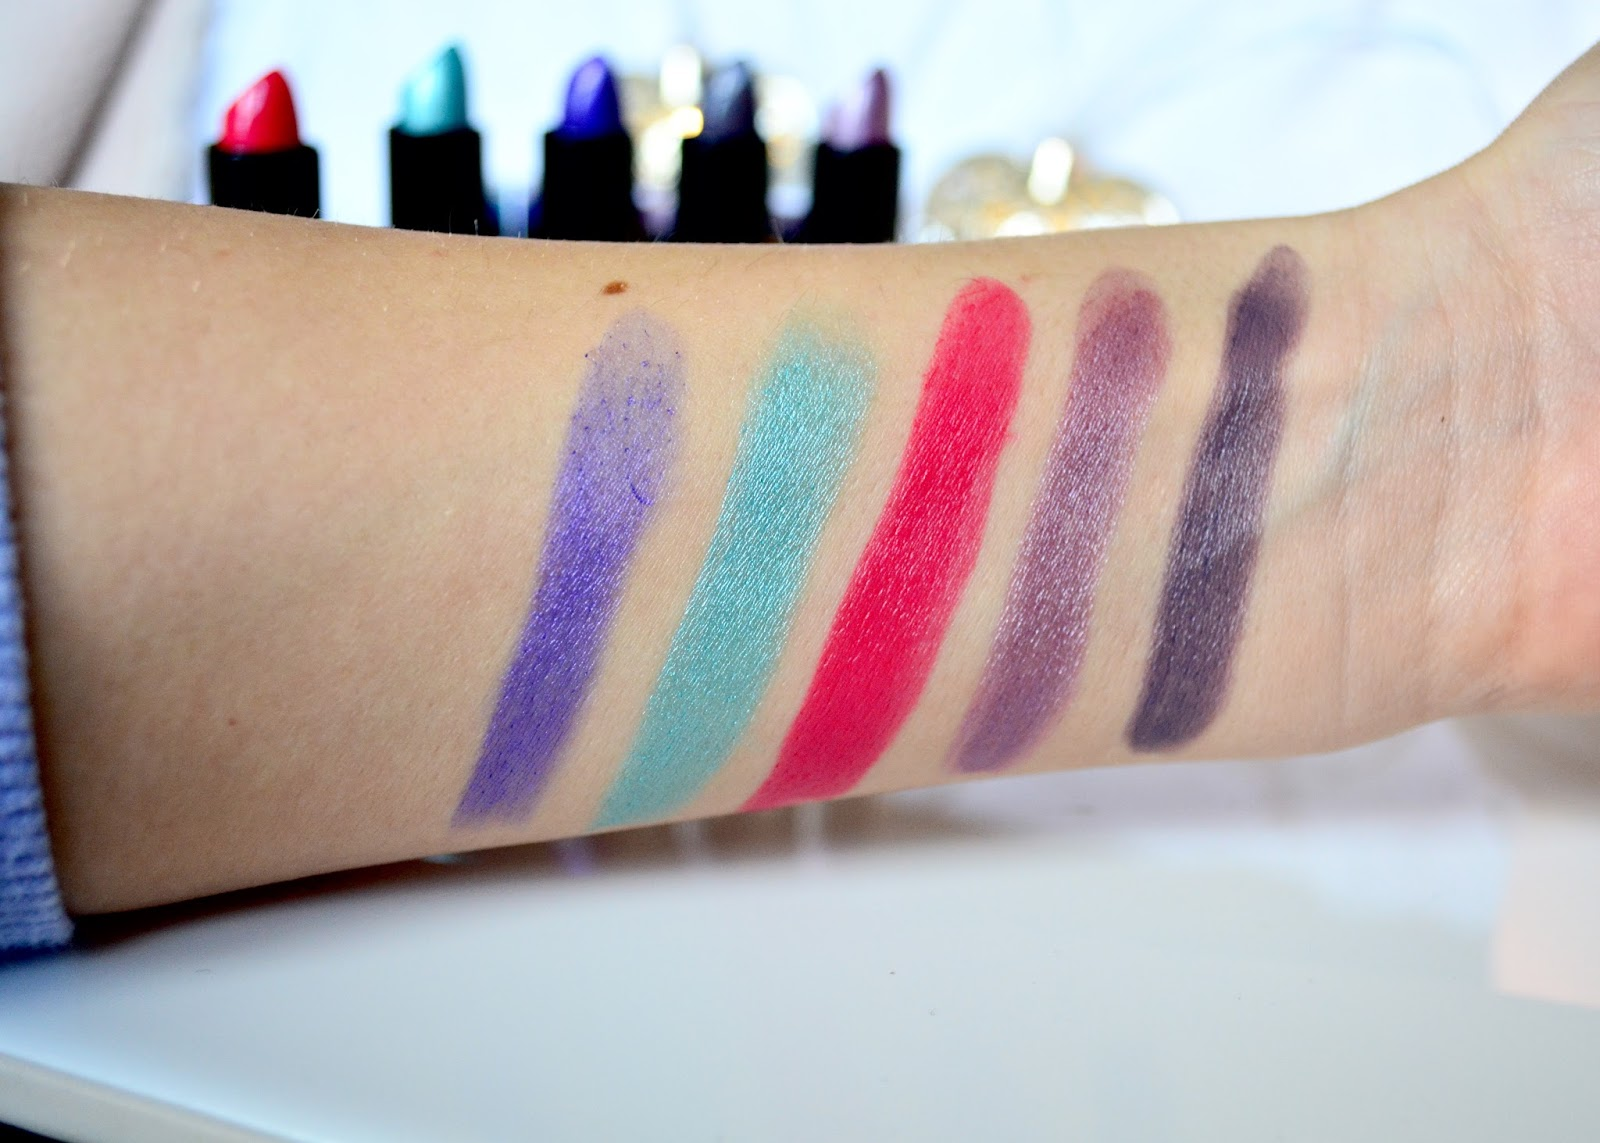 Makeup Revolution, Makeup Revolution Unicorns Unite Lipsticks, Lipsticks, Unicorns Unite, Makeup, Lipstick Collection, Collection, Review,